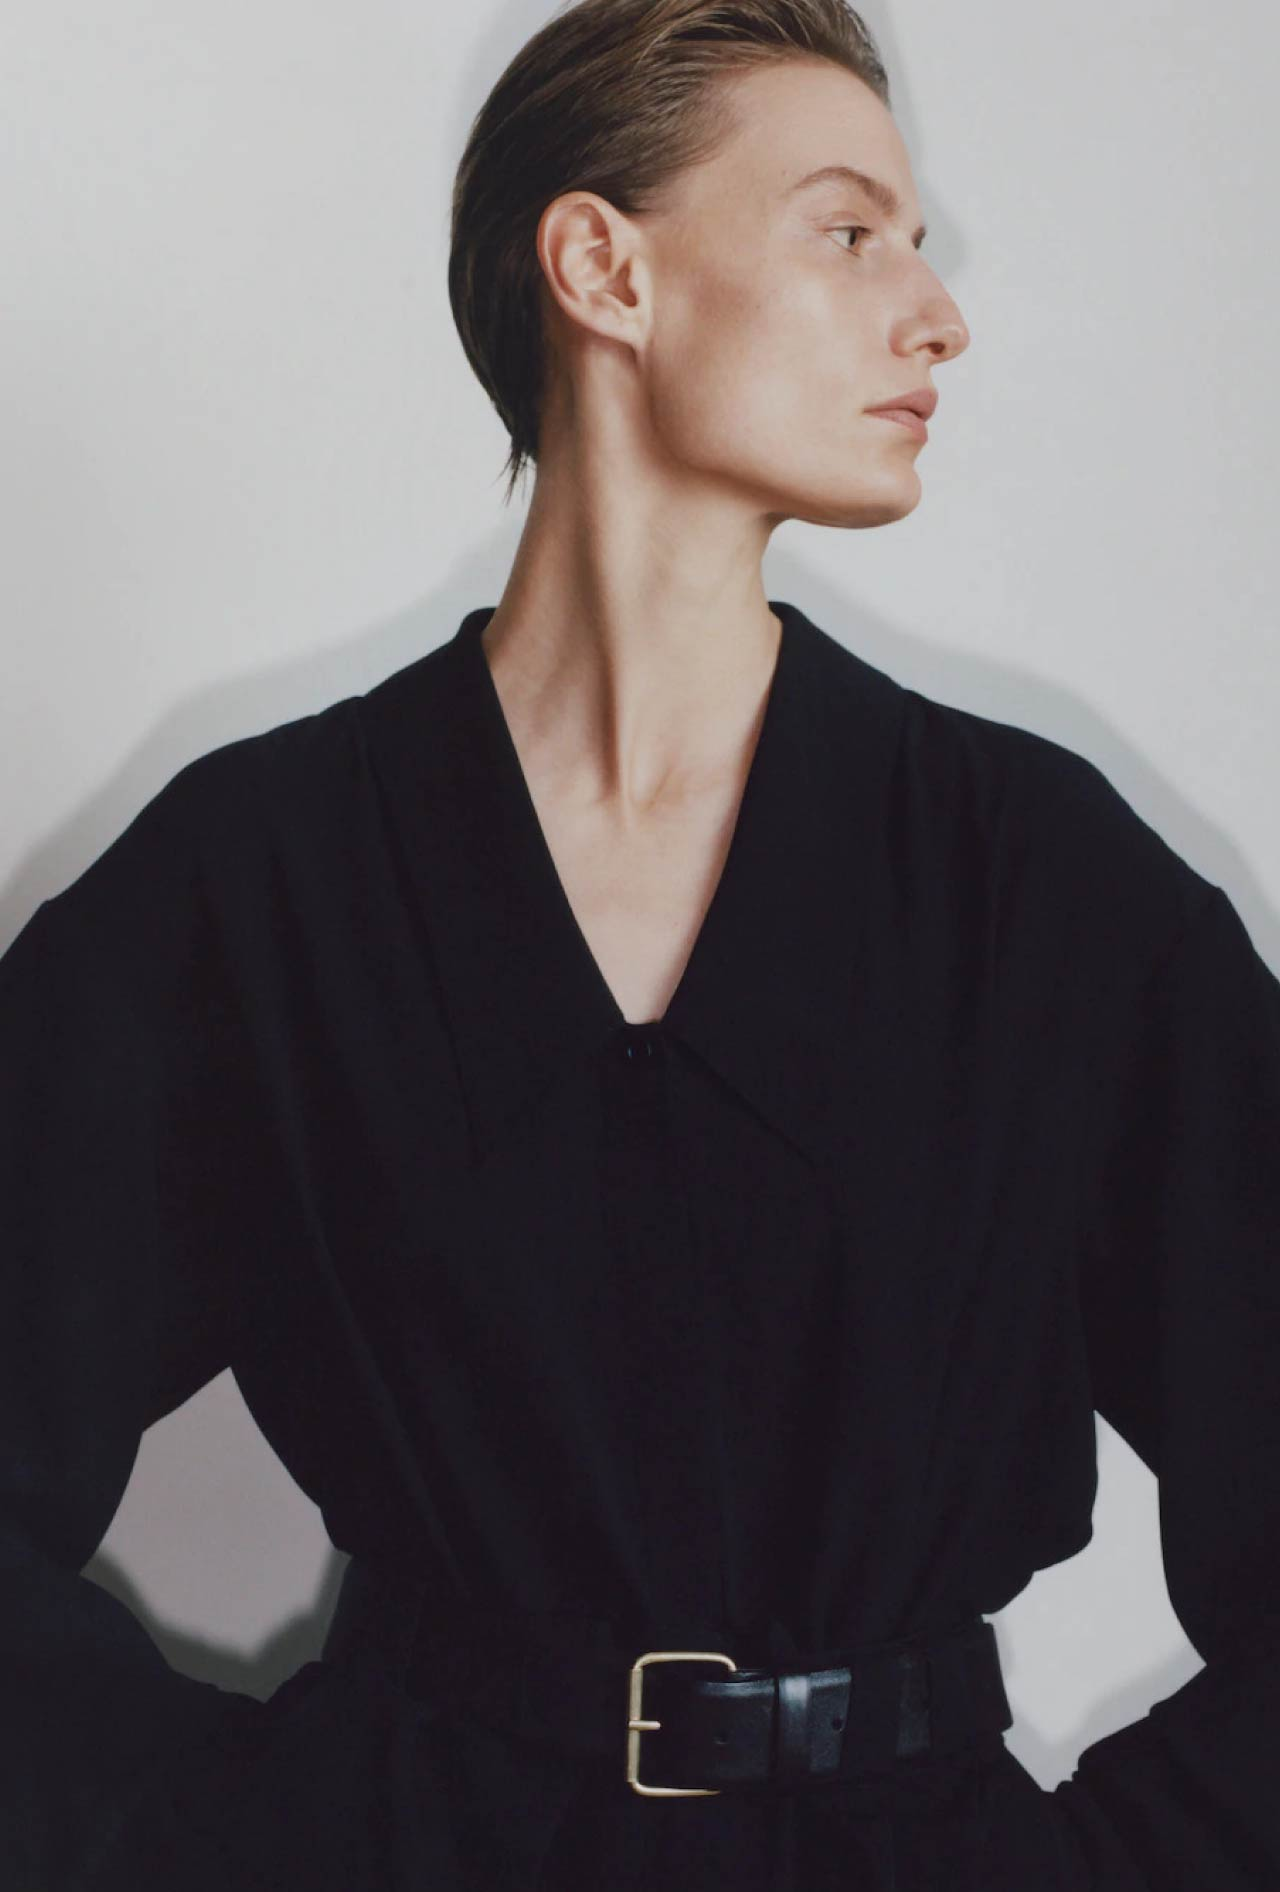 Slight Dropped Shoulders at The Row | The Cutting Class. Low cut neckline / collar on black shirt Pre Fall 2020.